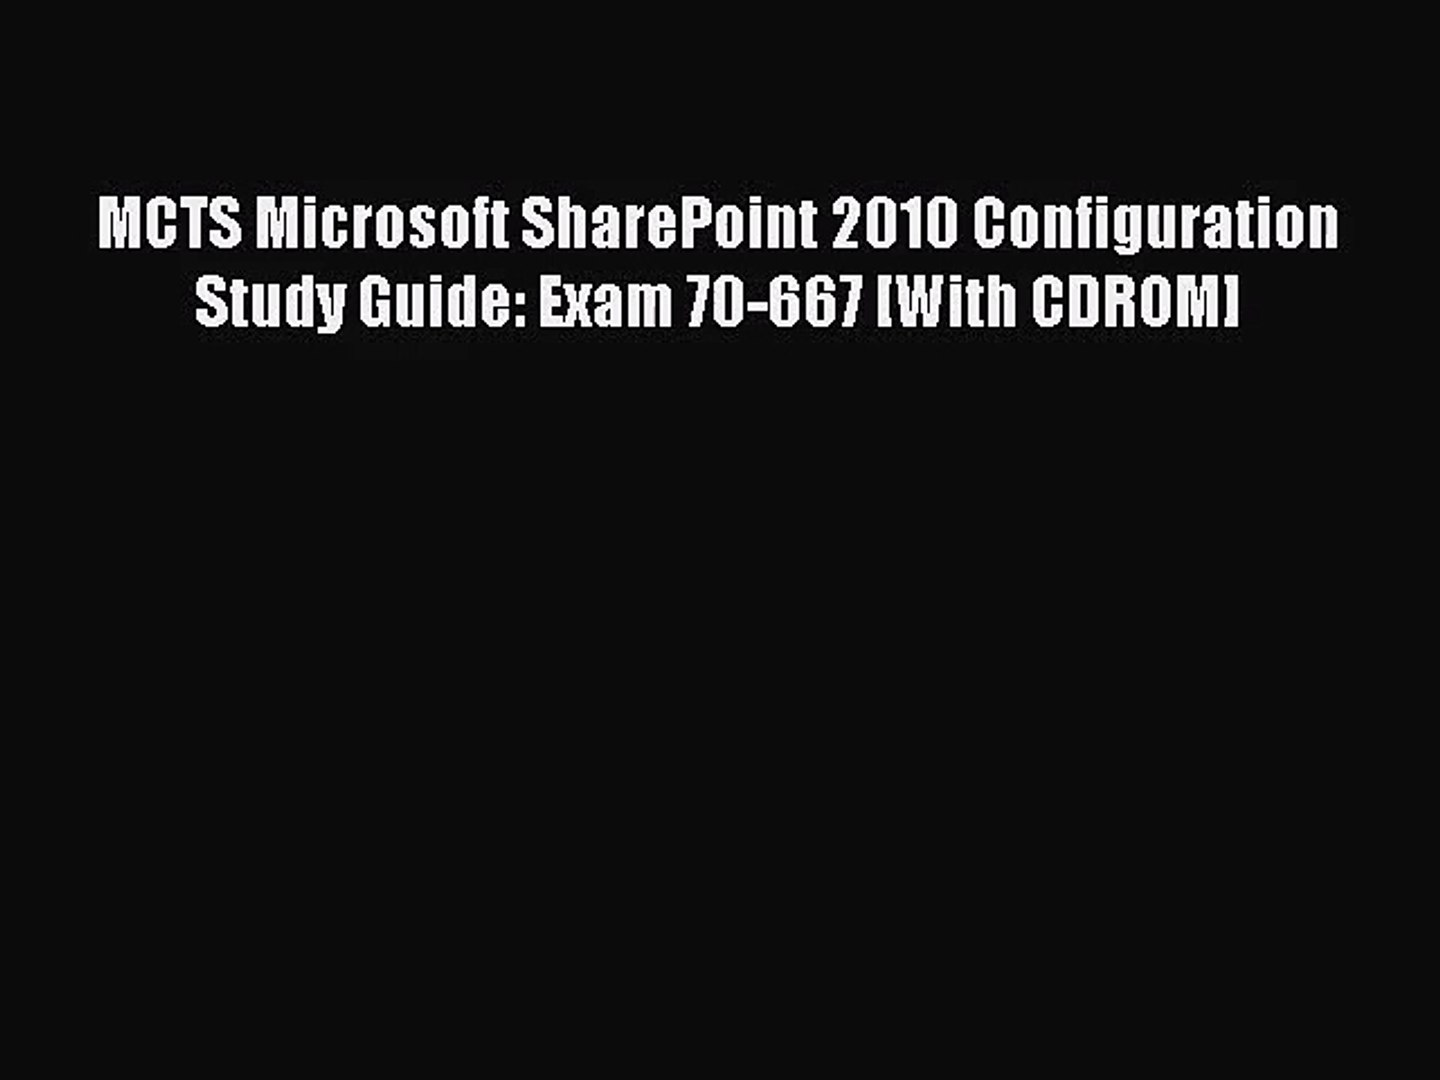 [PDF Download] MCTS Microsoft SharePoint 2010 Configuration Study Guide: Exam 70-667 [With